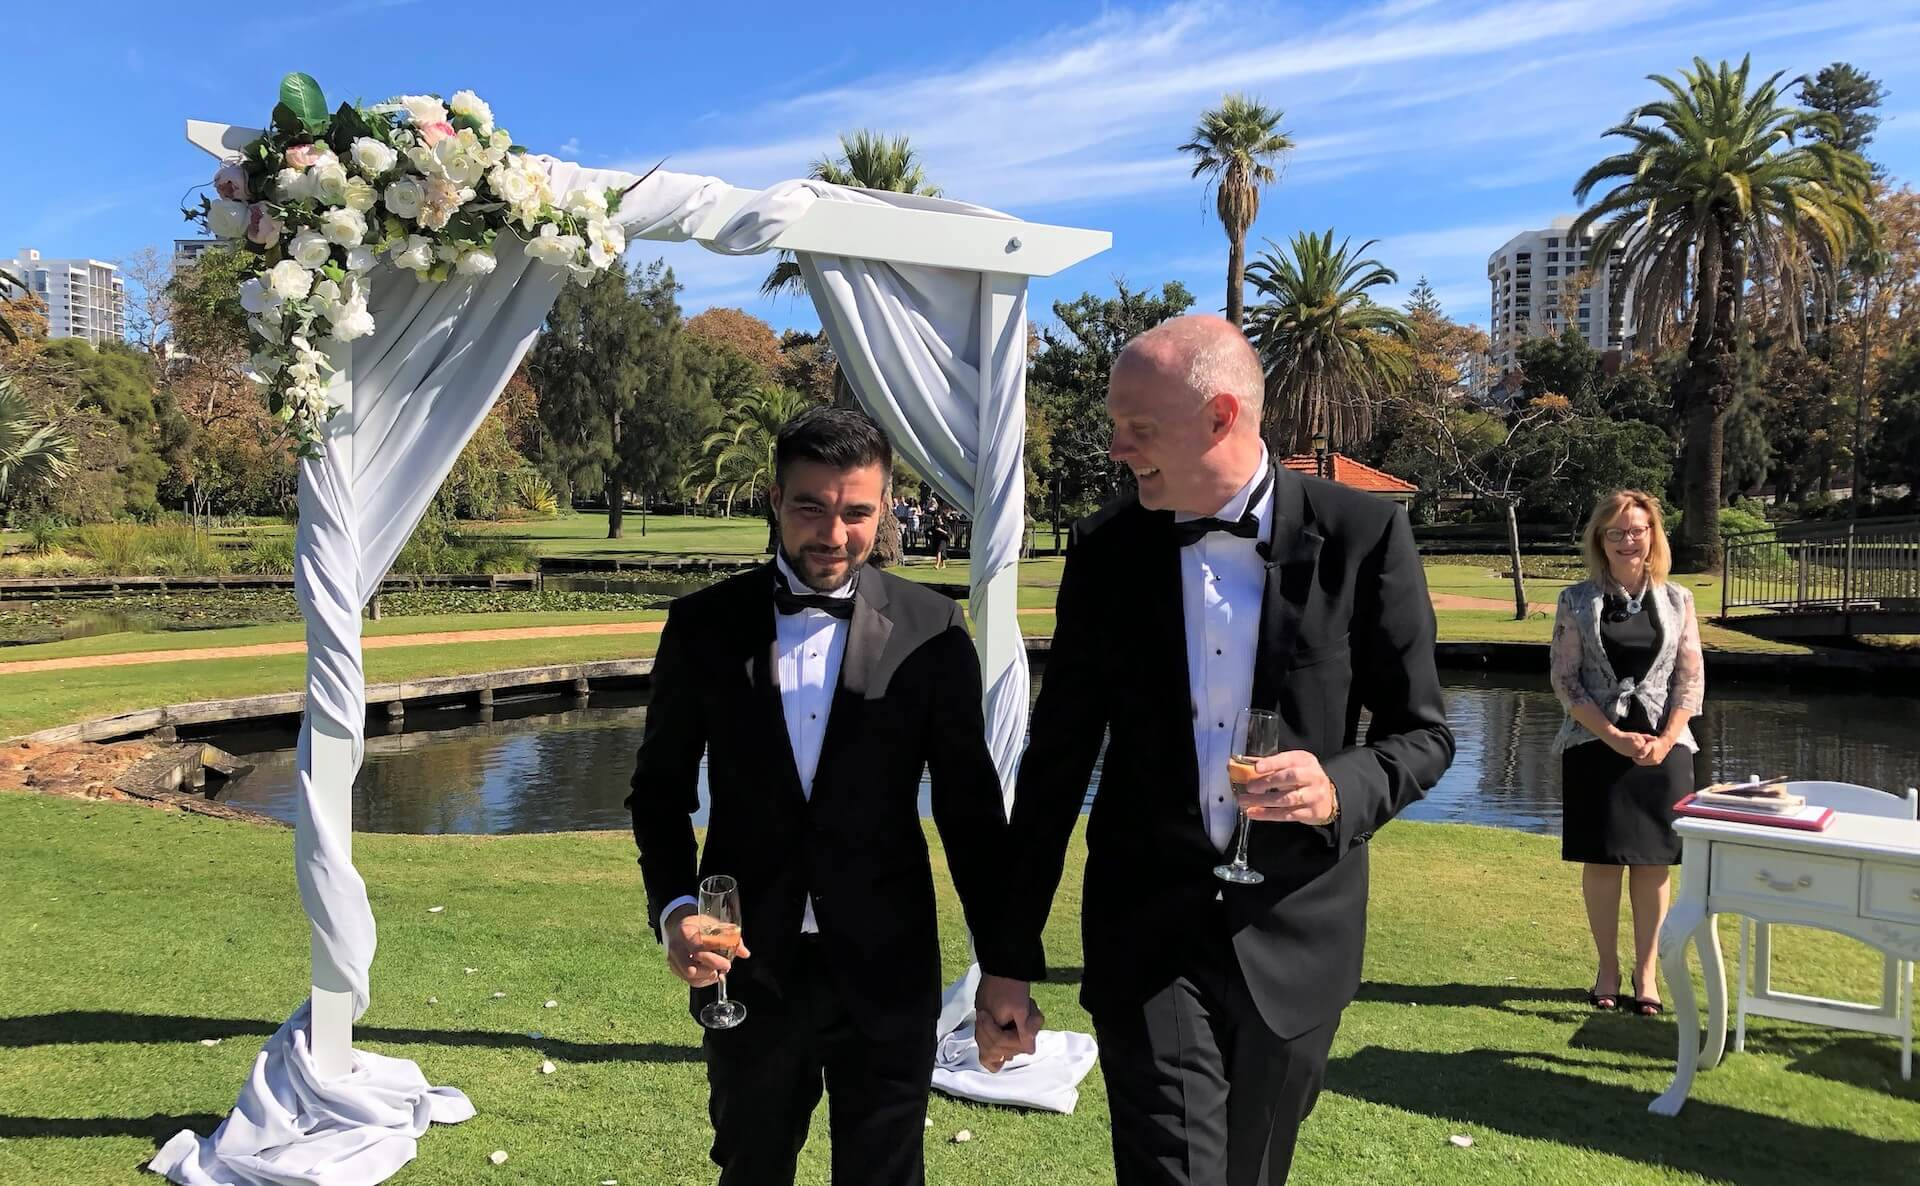 Same Sex Wedding blog Photo 3 - TAG - Gay Weddings, Love Bird Ceremonies